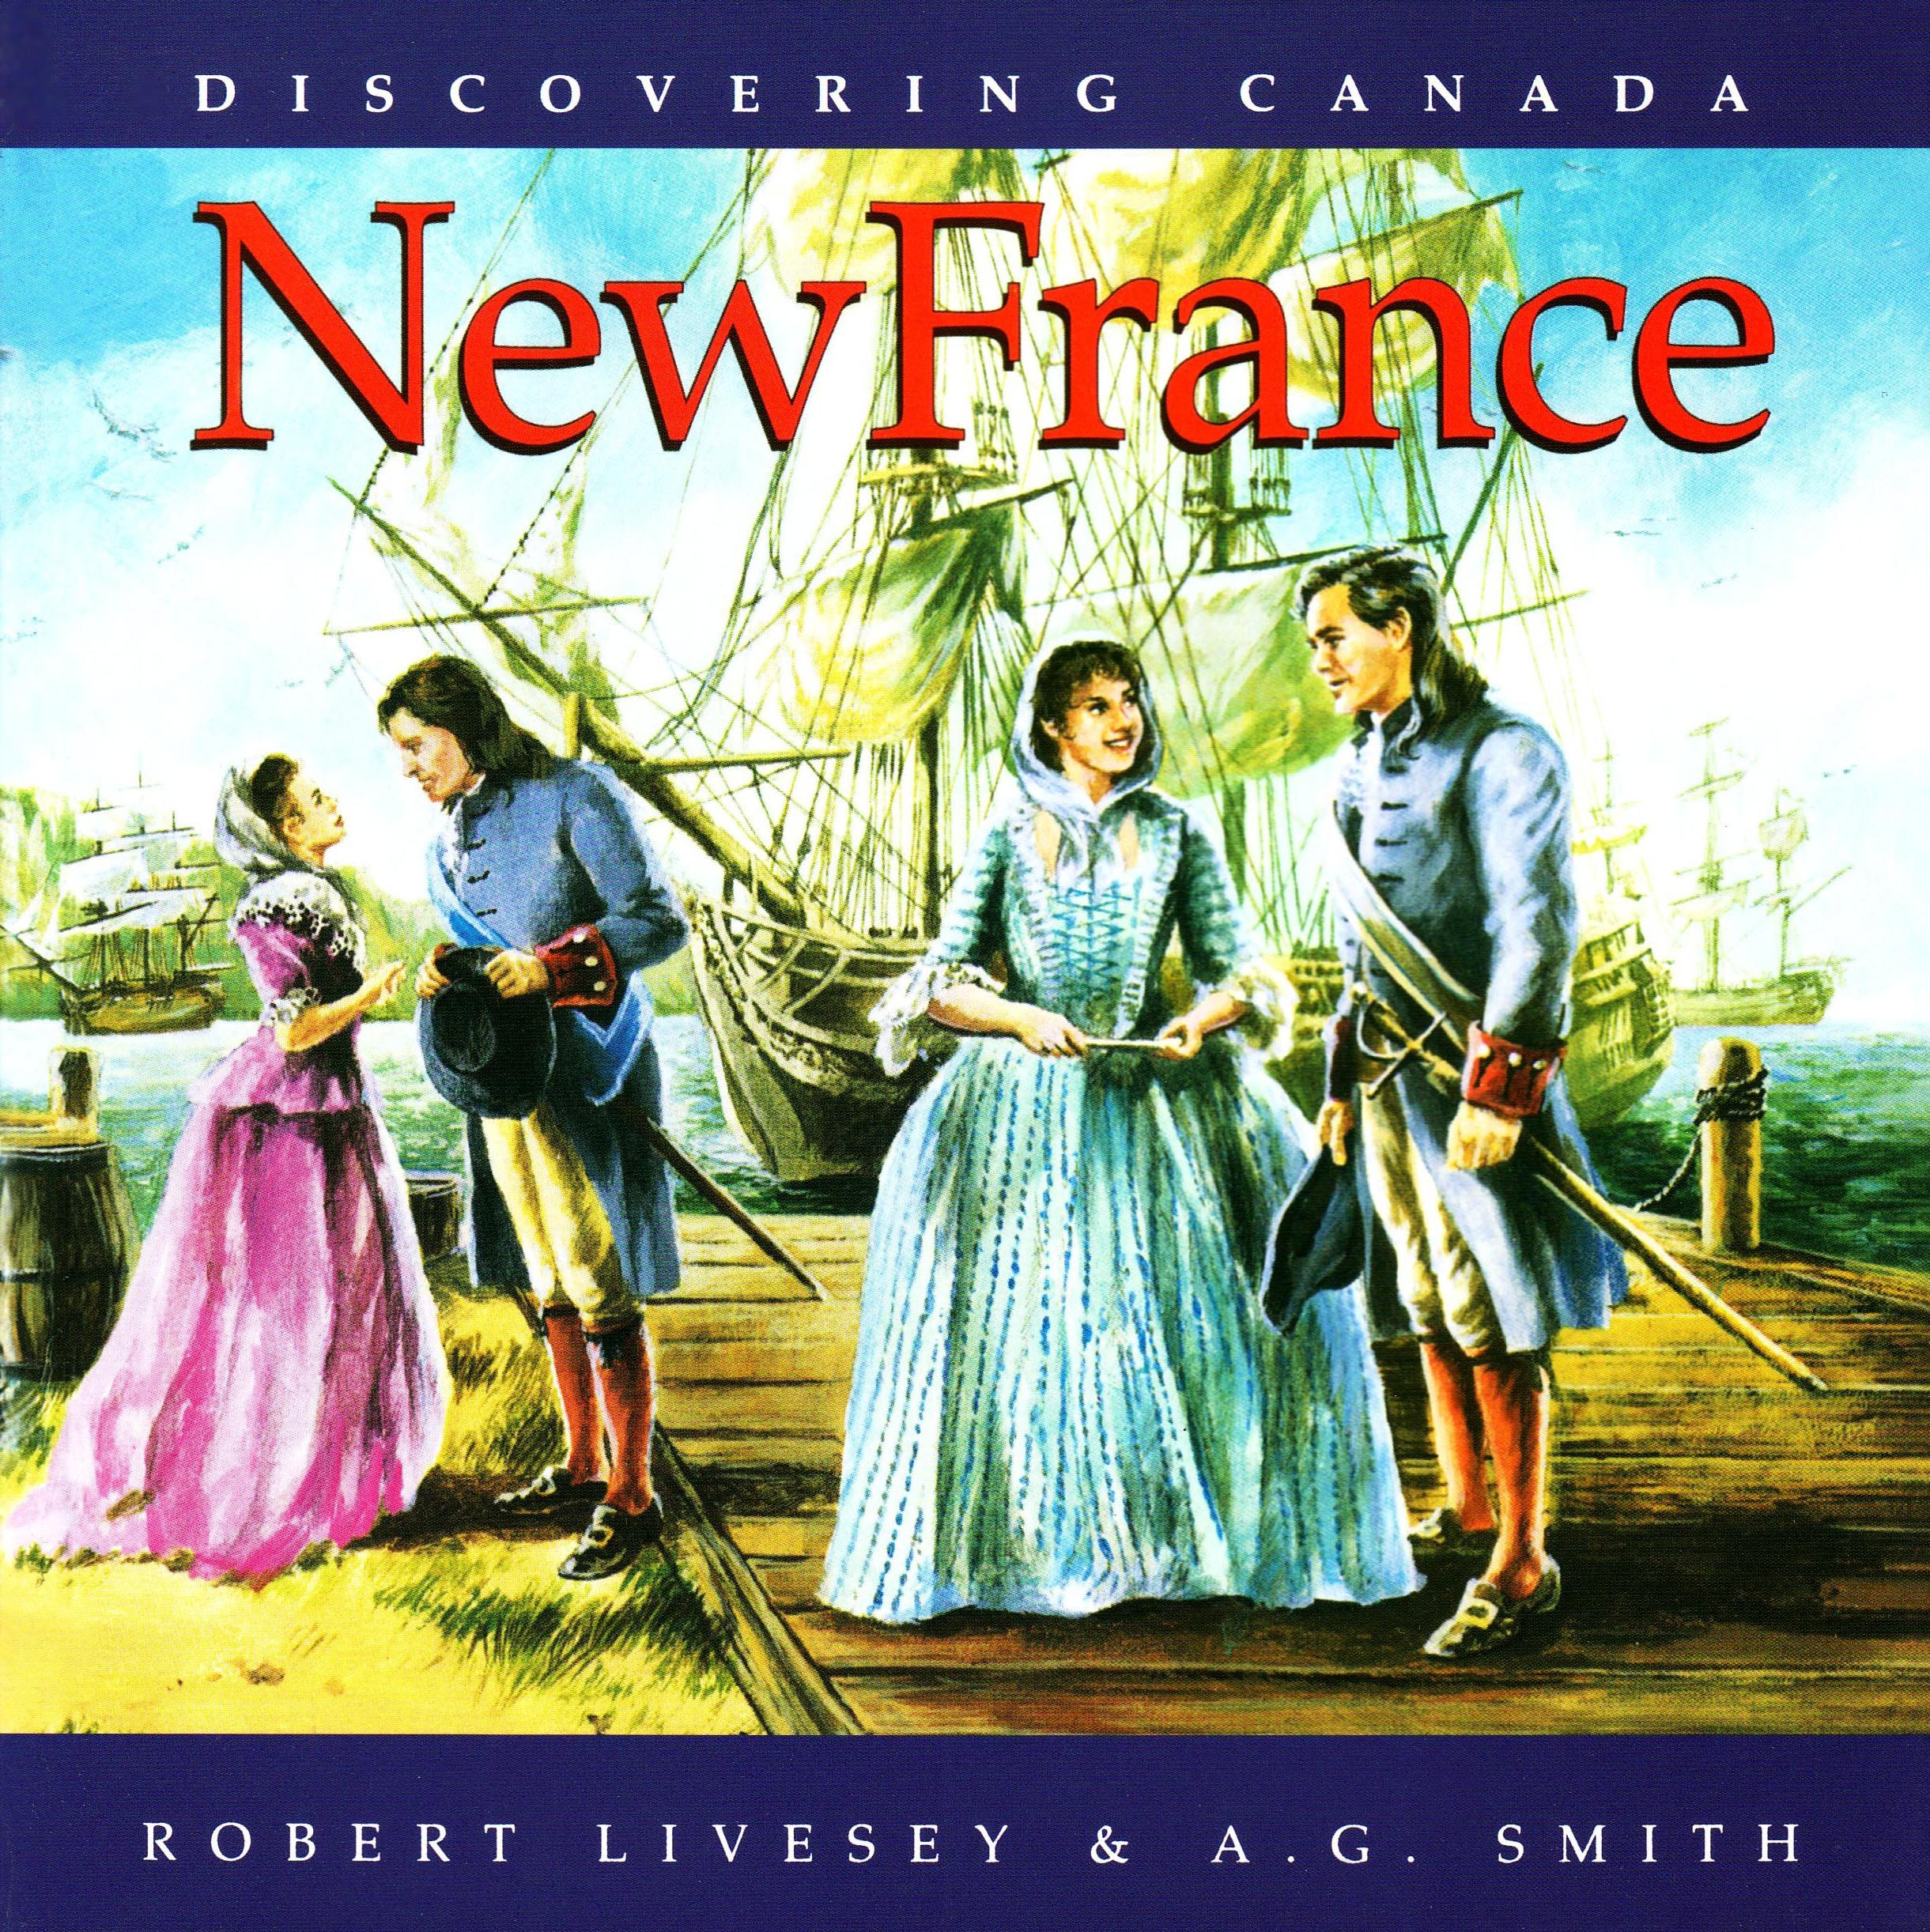 New France (Discovering Canada)